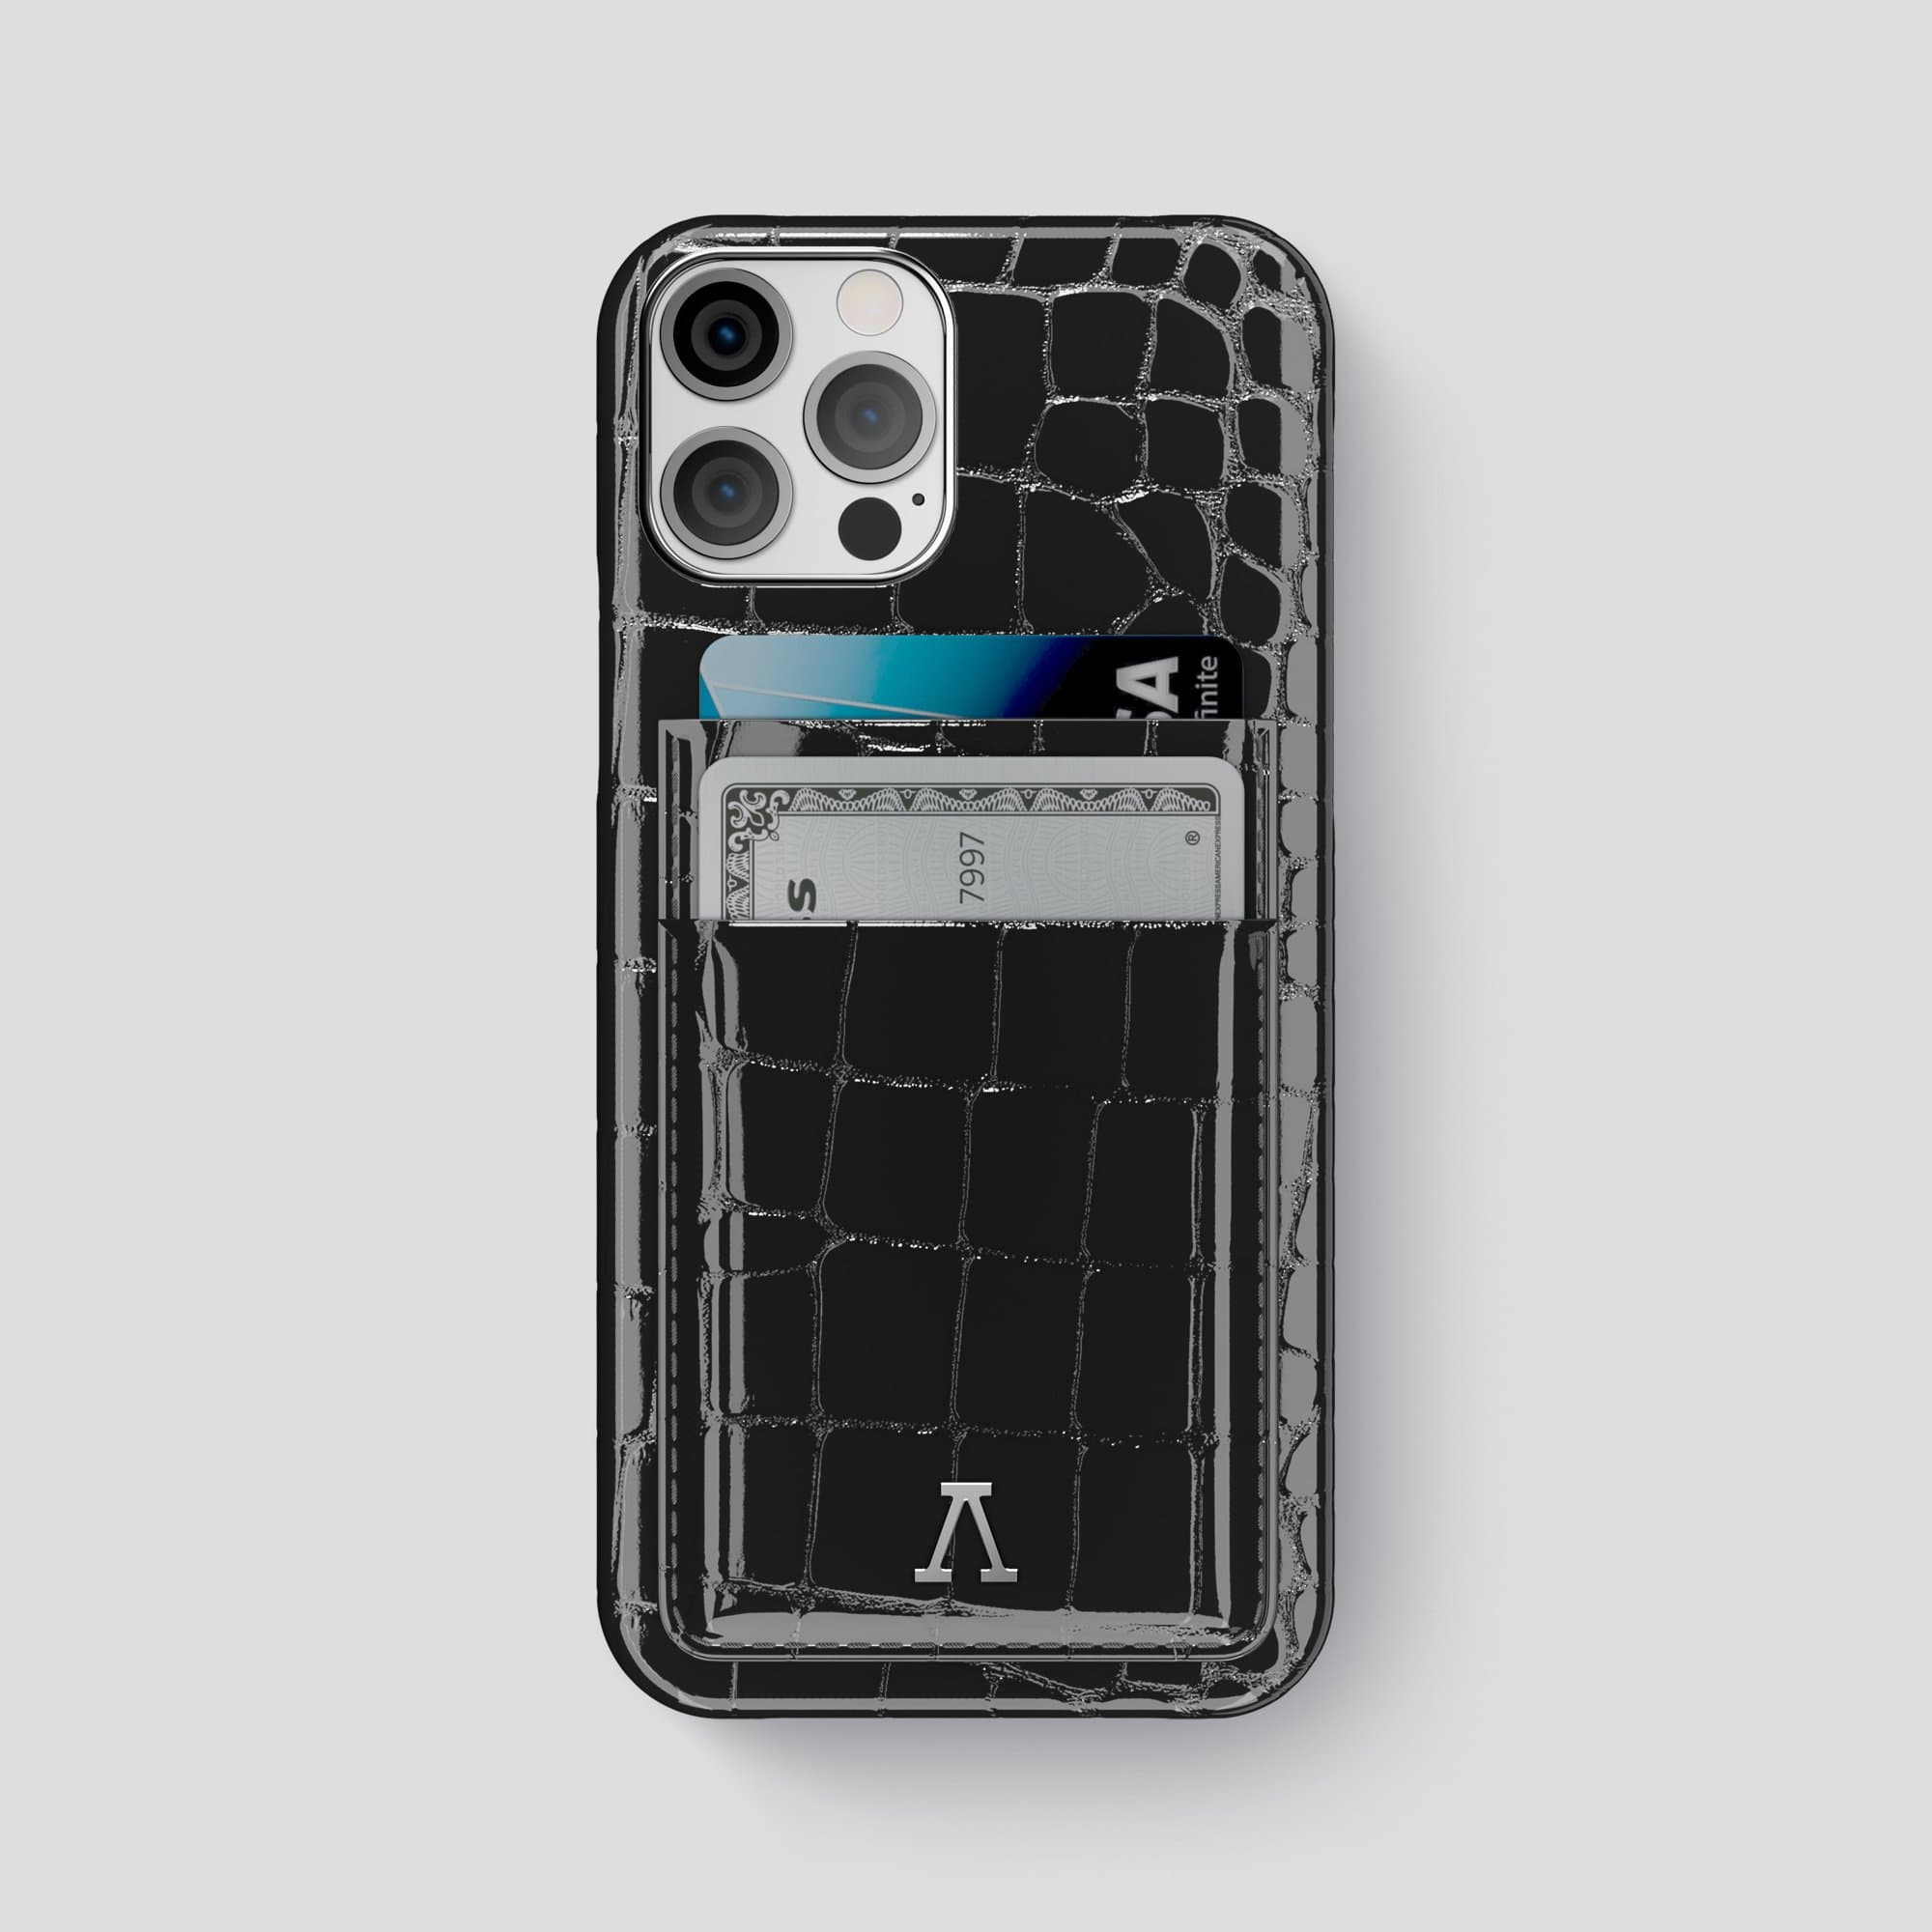 iPhone 12 Pro Max Double Card Case Shiny Alligator